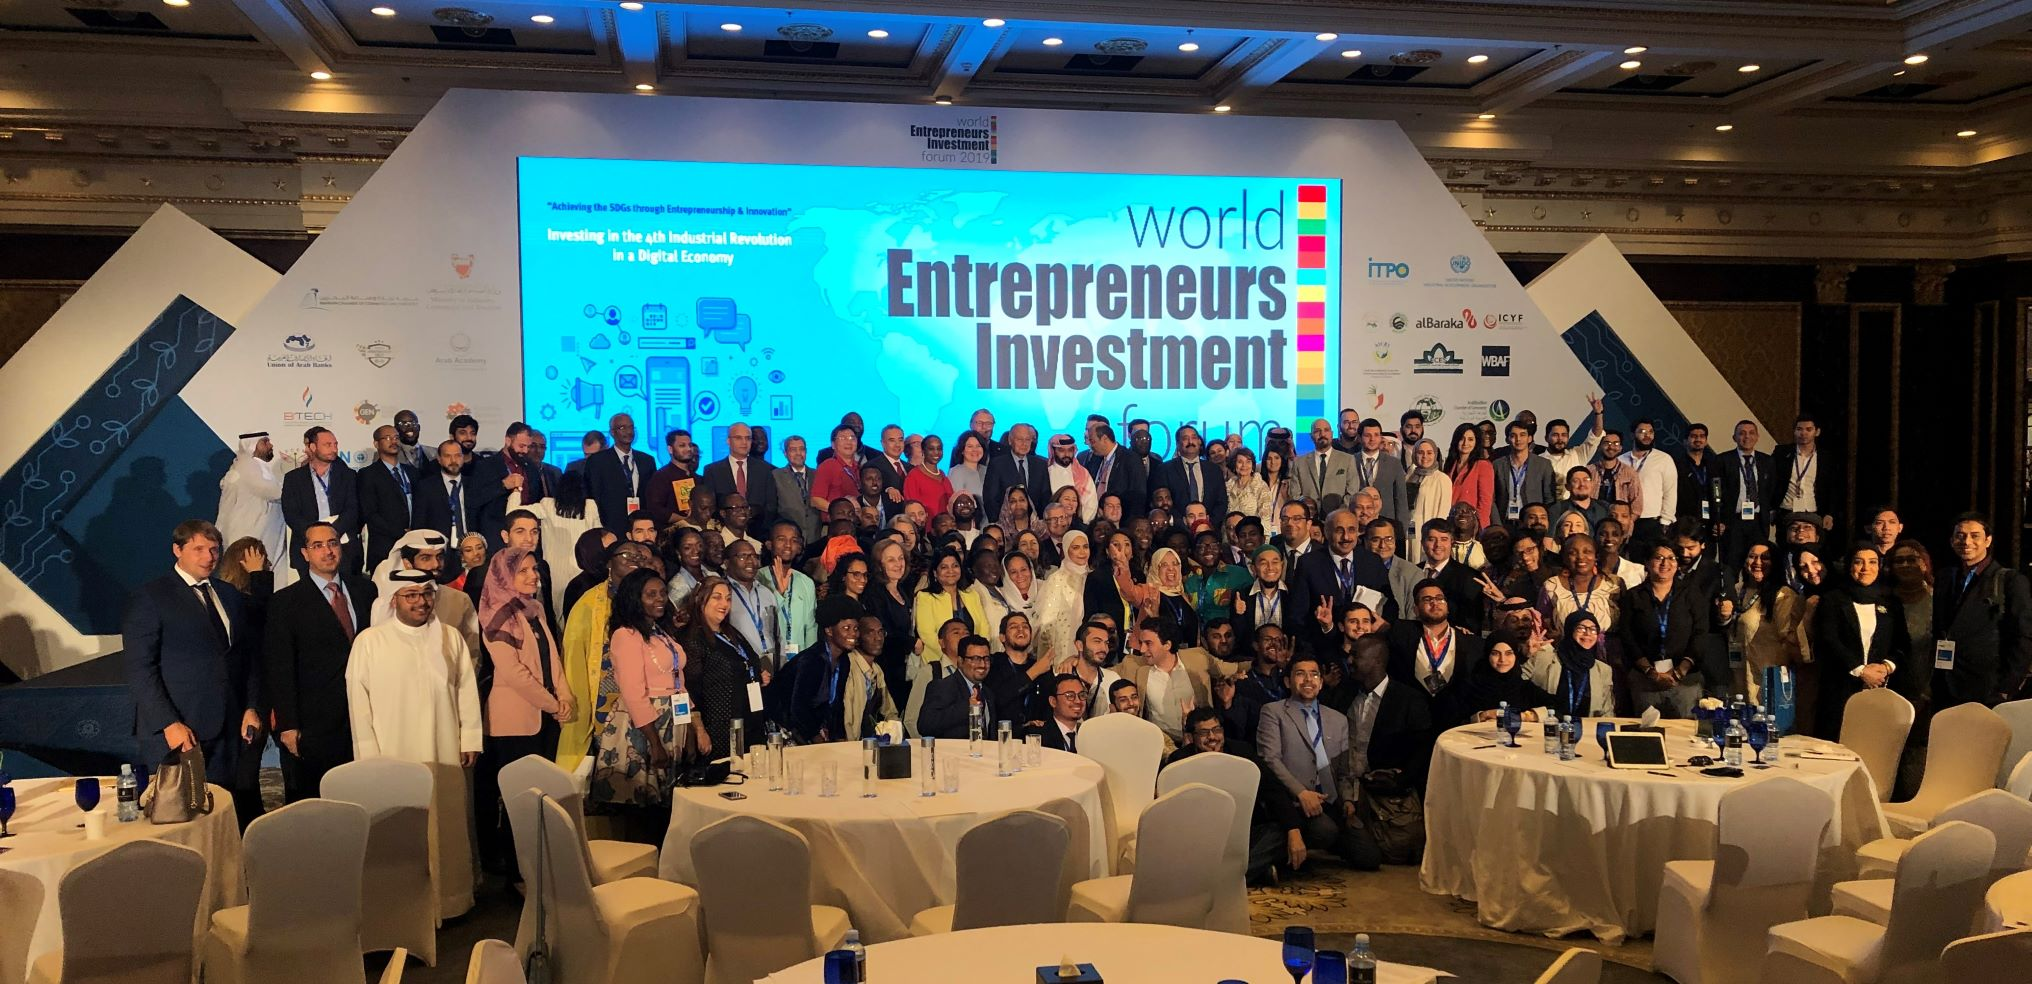 3rd edition of The World Entrepreneurs Investment Forum (WEIF 2019)